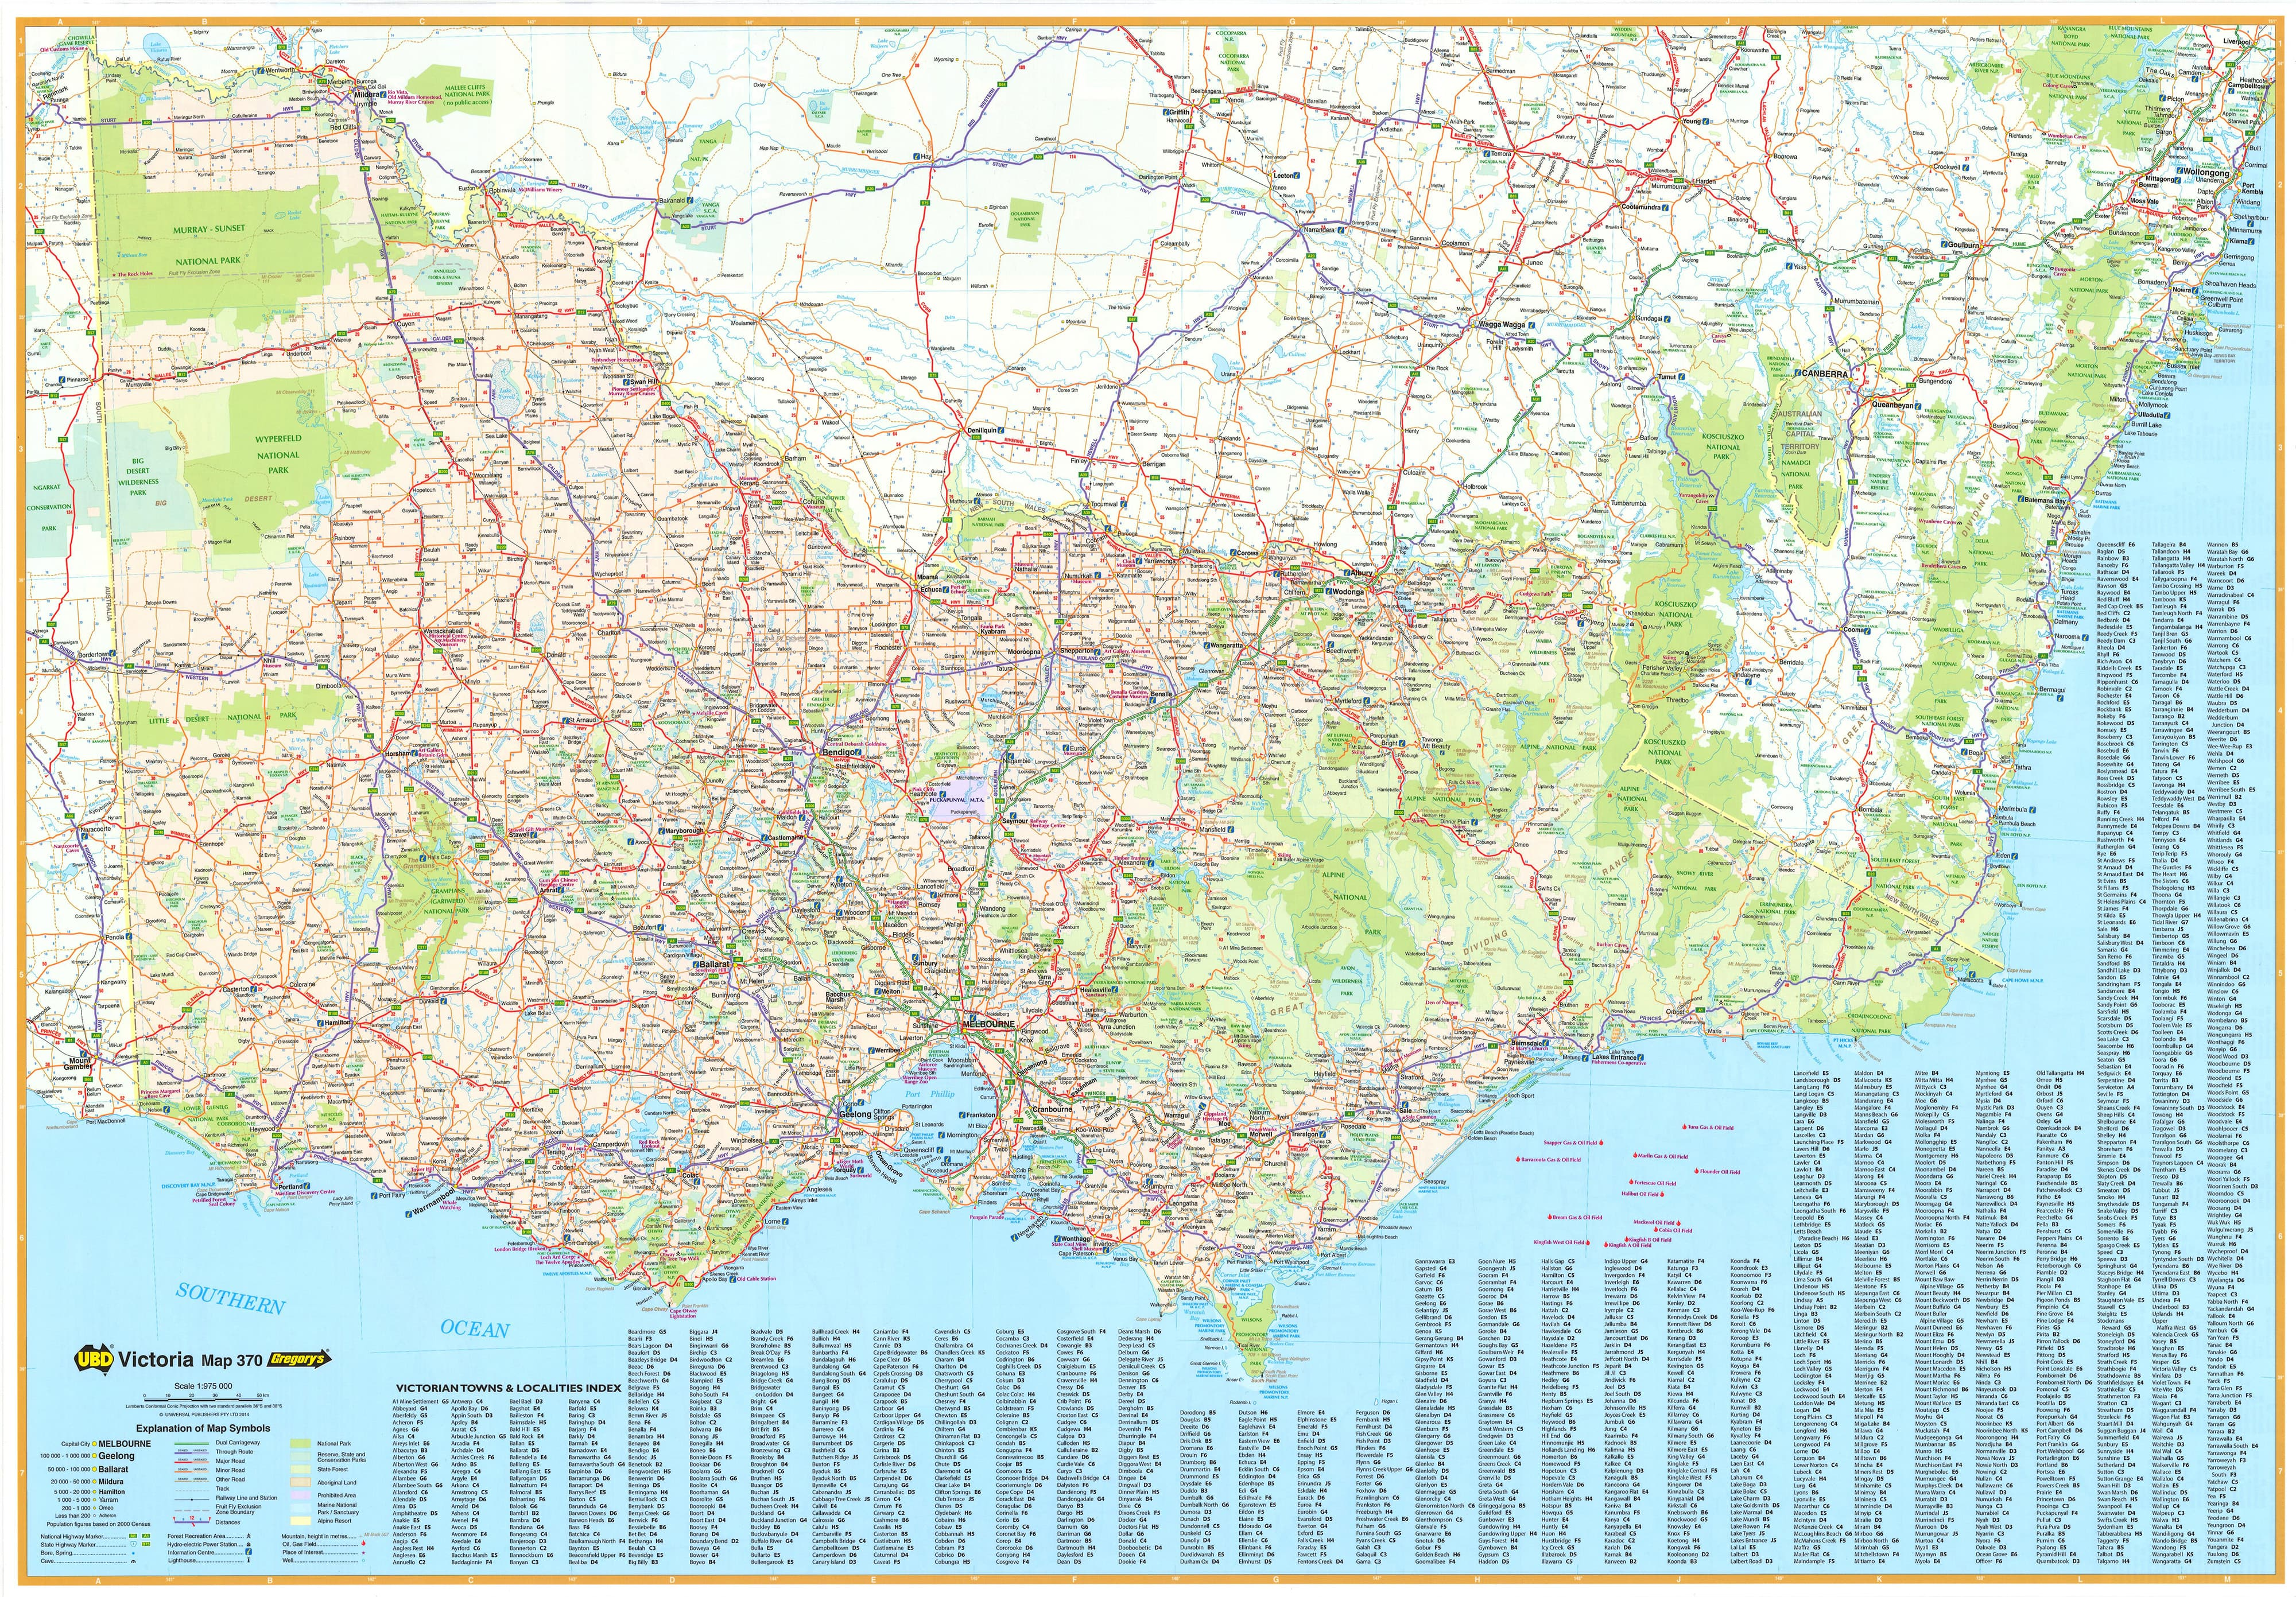 Victoria 370 UBD Map 1000 x 690mm Laminated Wall Map